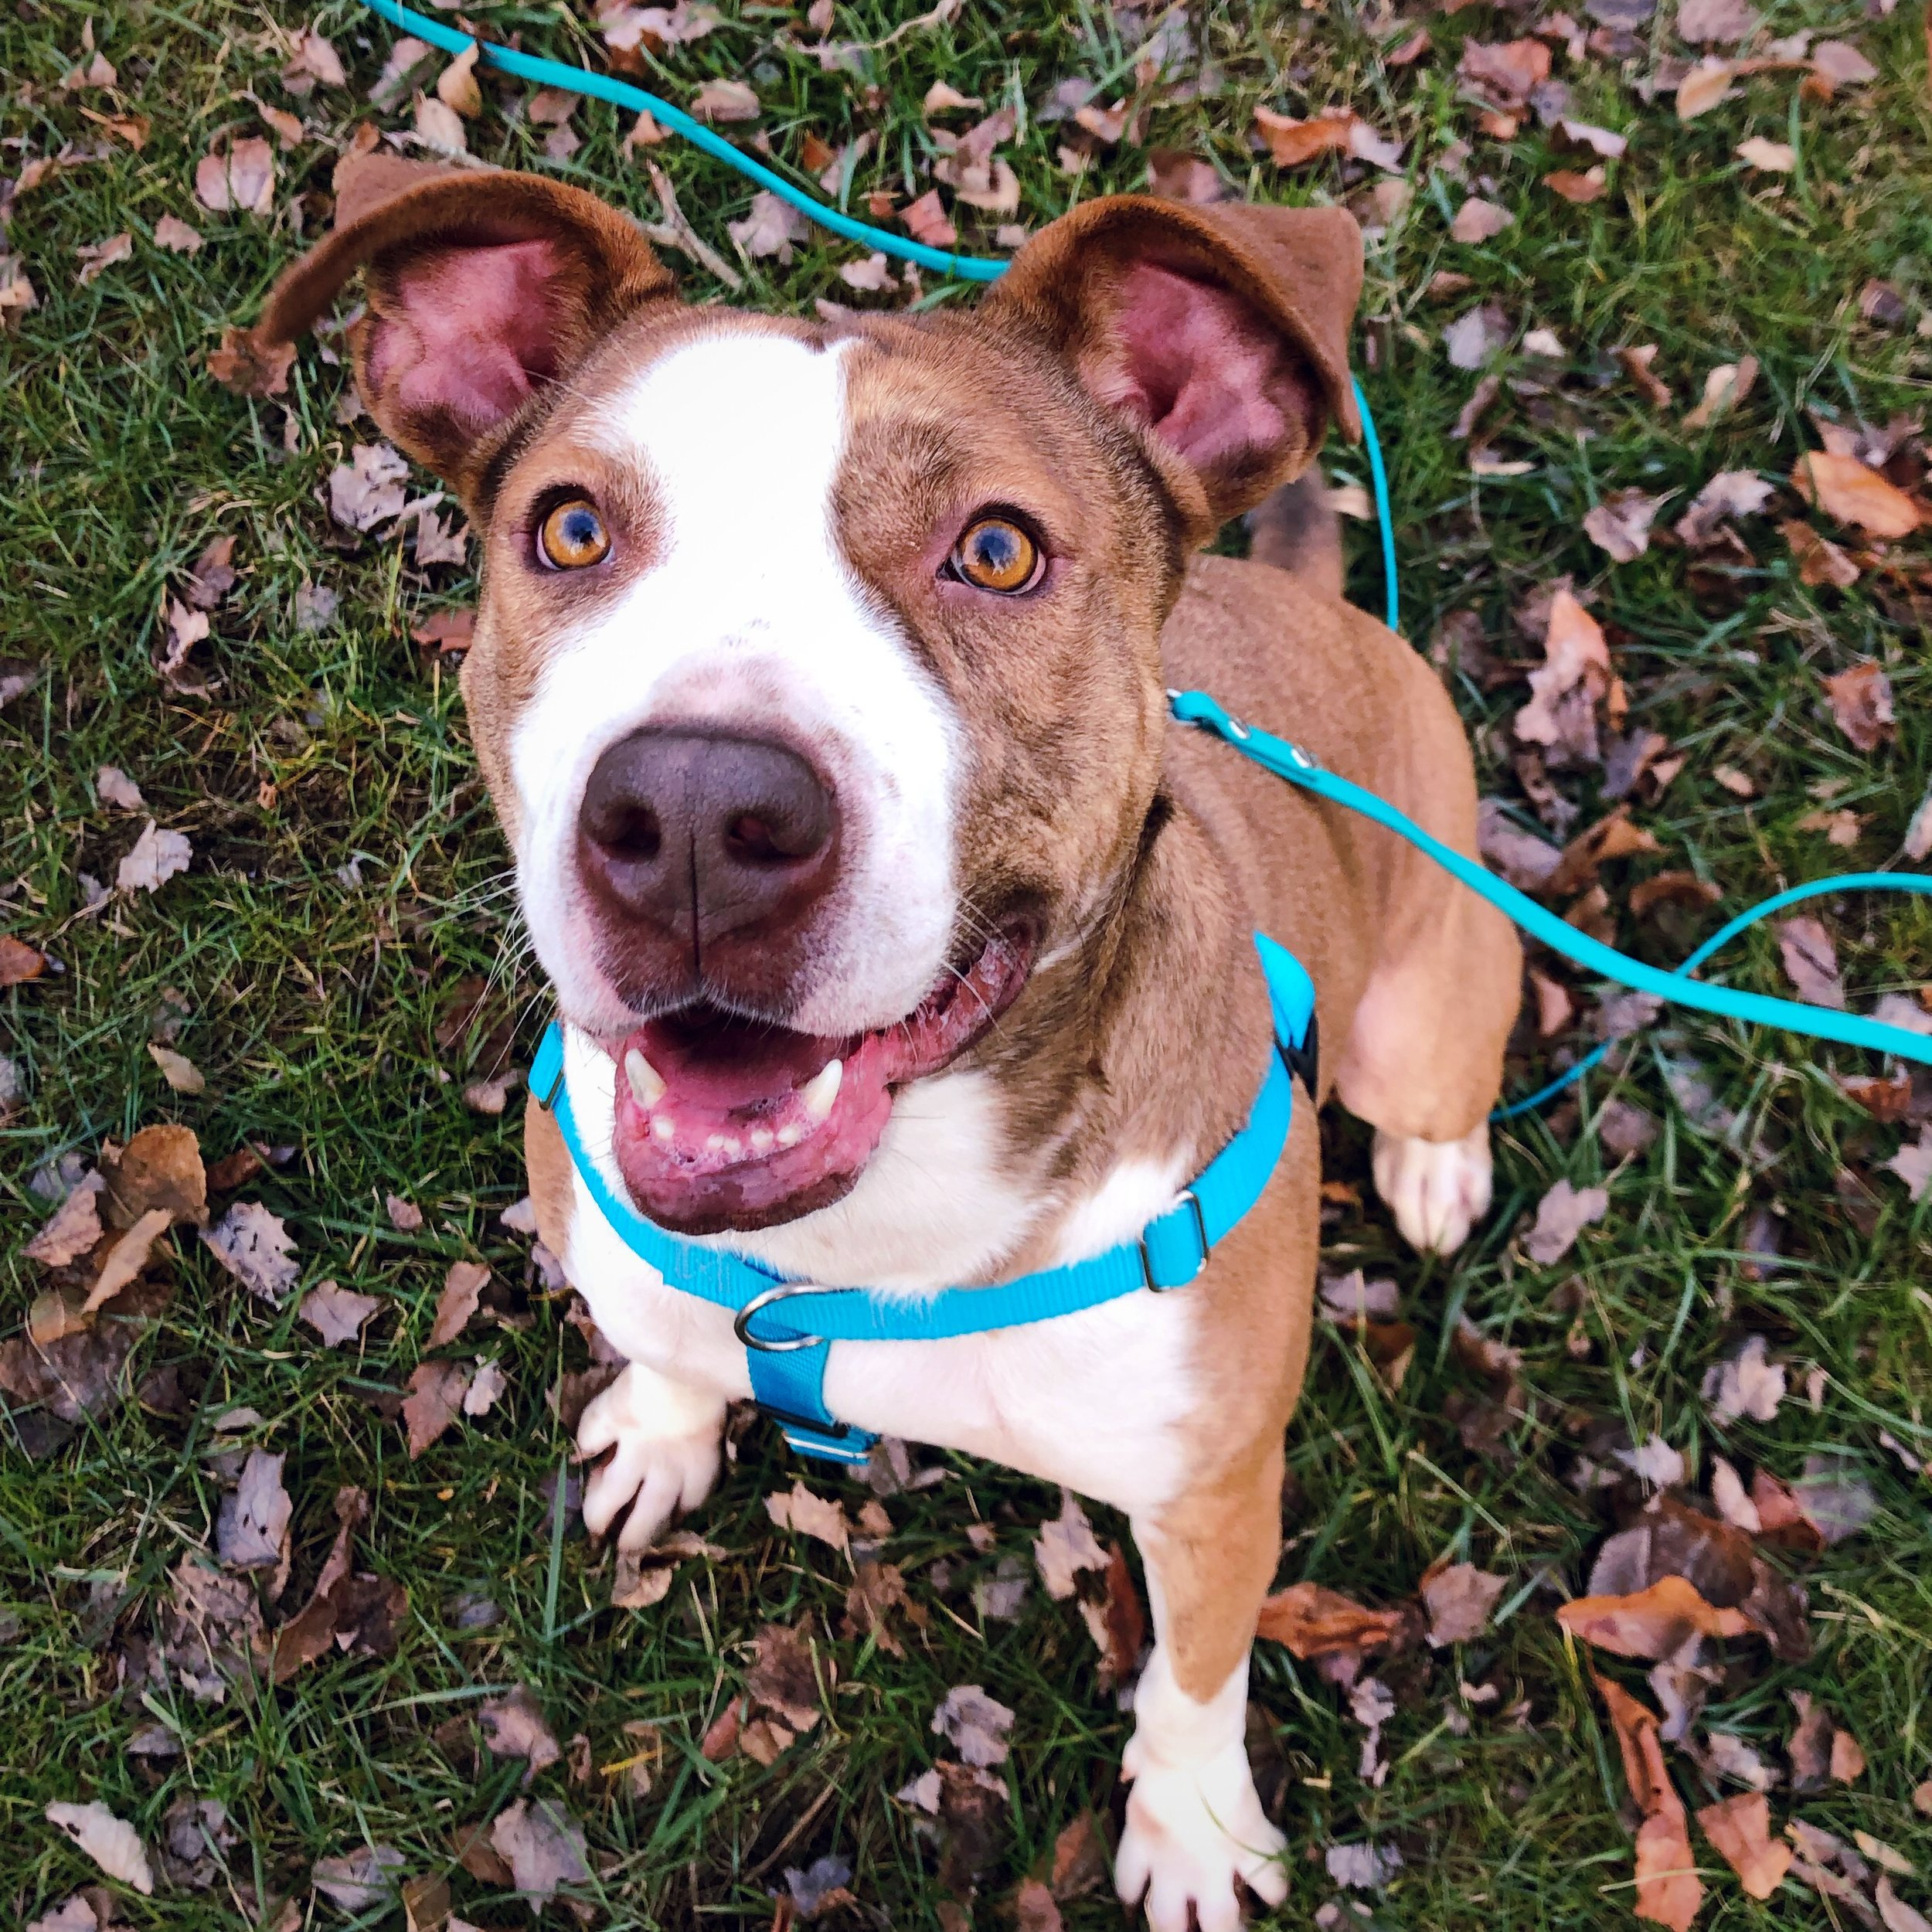 Grayson is an Adoptable Abider available through Mostly Muttz Rescue. -